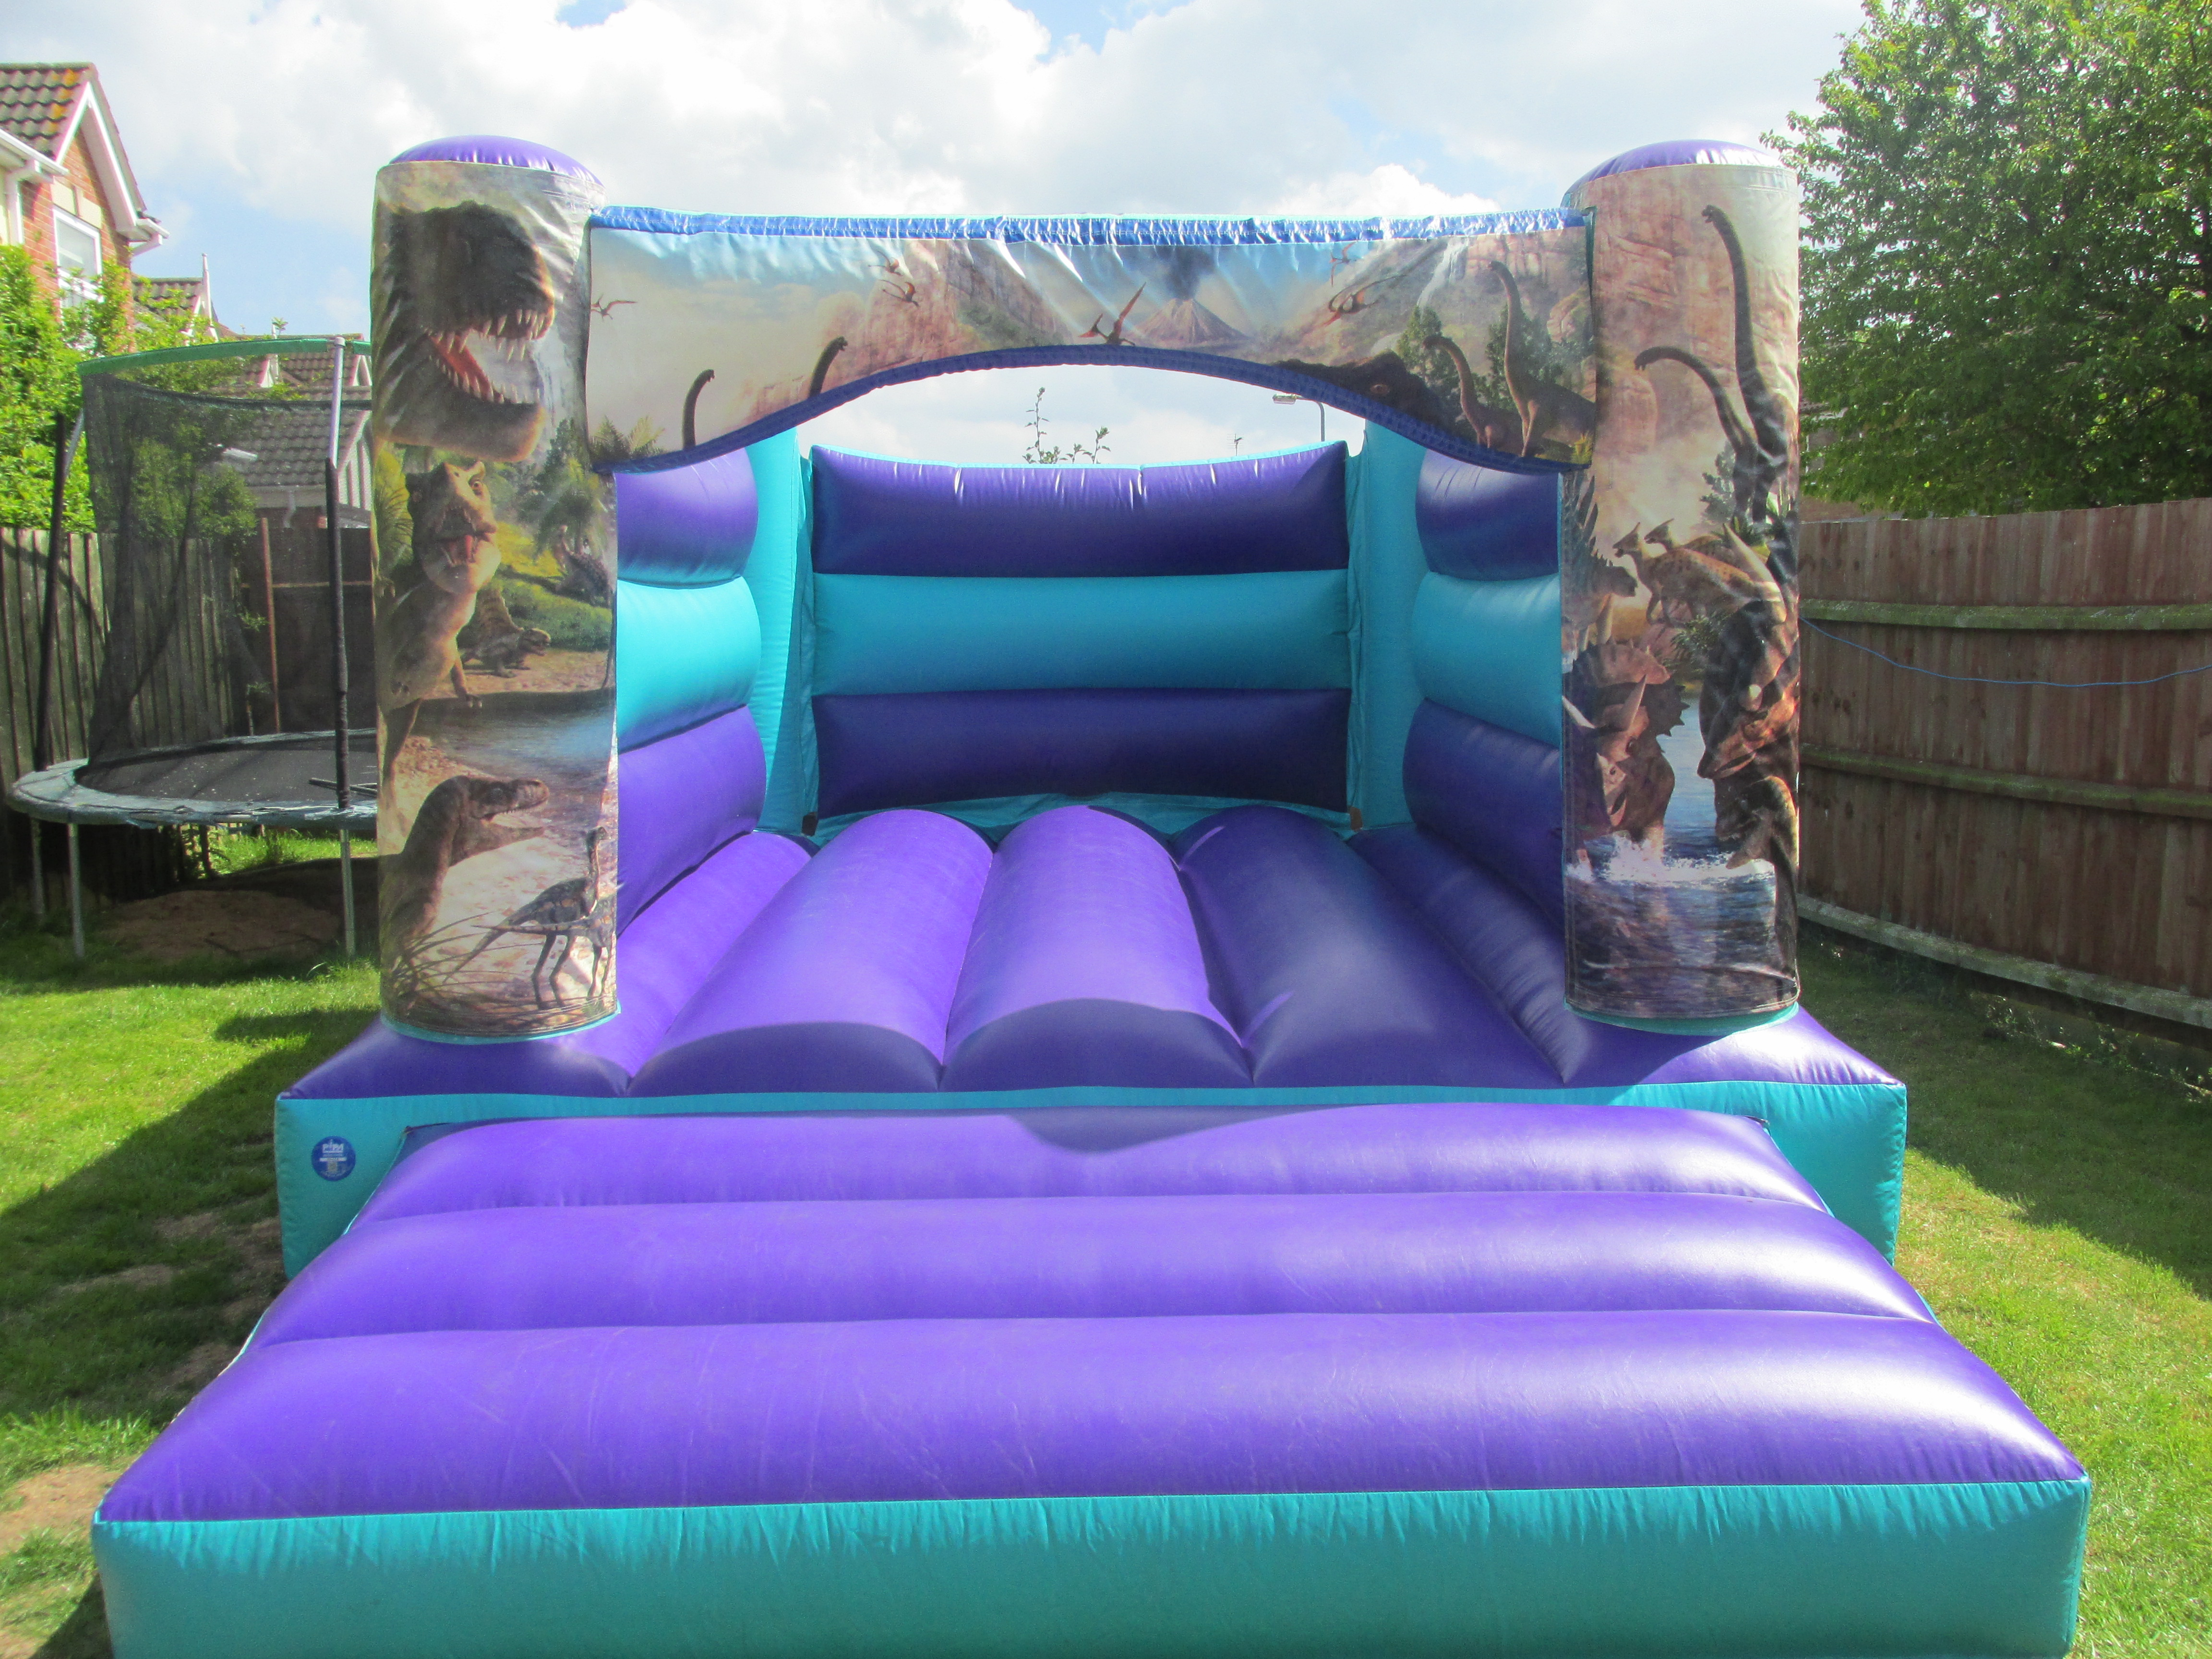 Amazing Jurassic Dinosaur Themed Bouncy Castle Hire In Peterborough, Bourne and Spalding